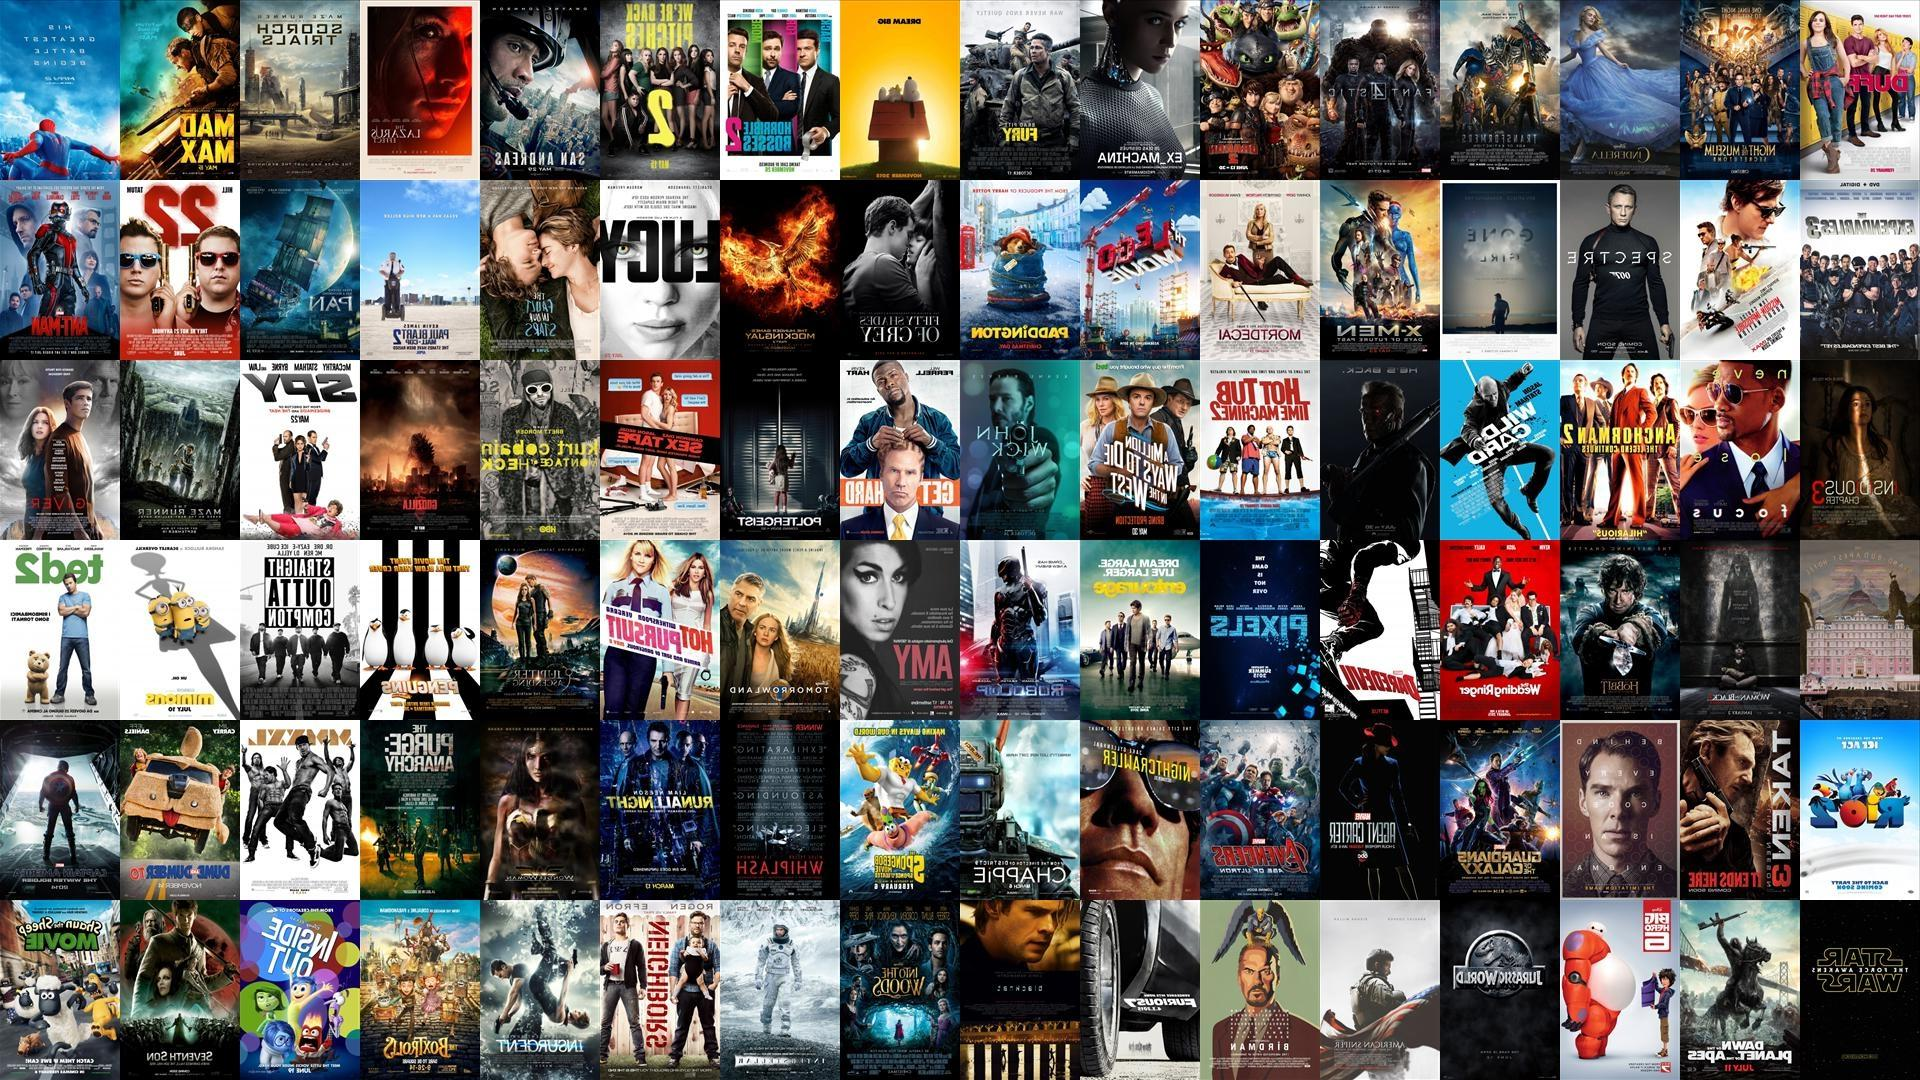 Download Wallpaper Movie Collage - plugin  Perfect Image Reference_827153.jpg